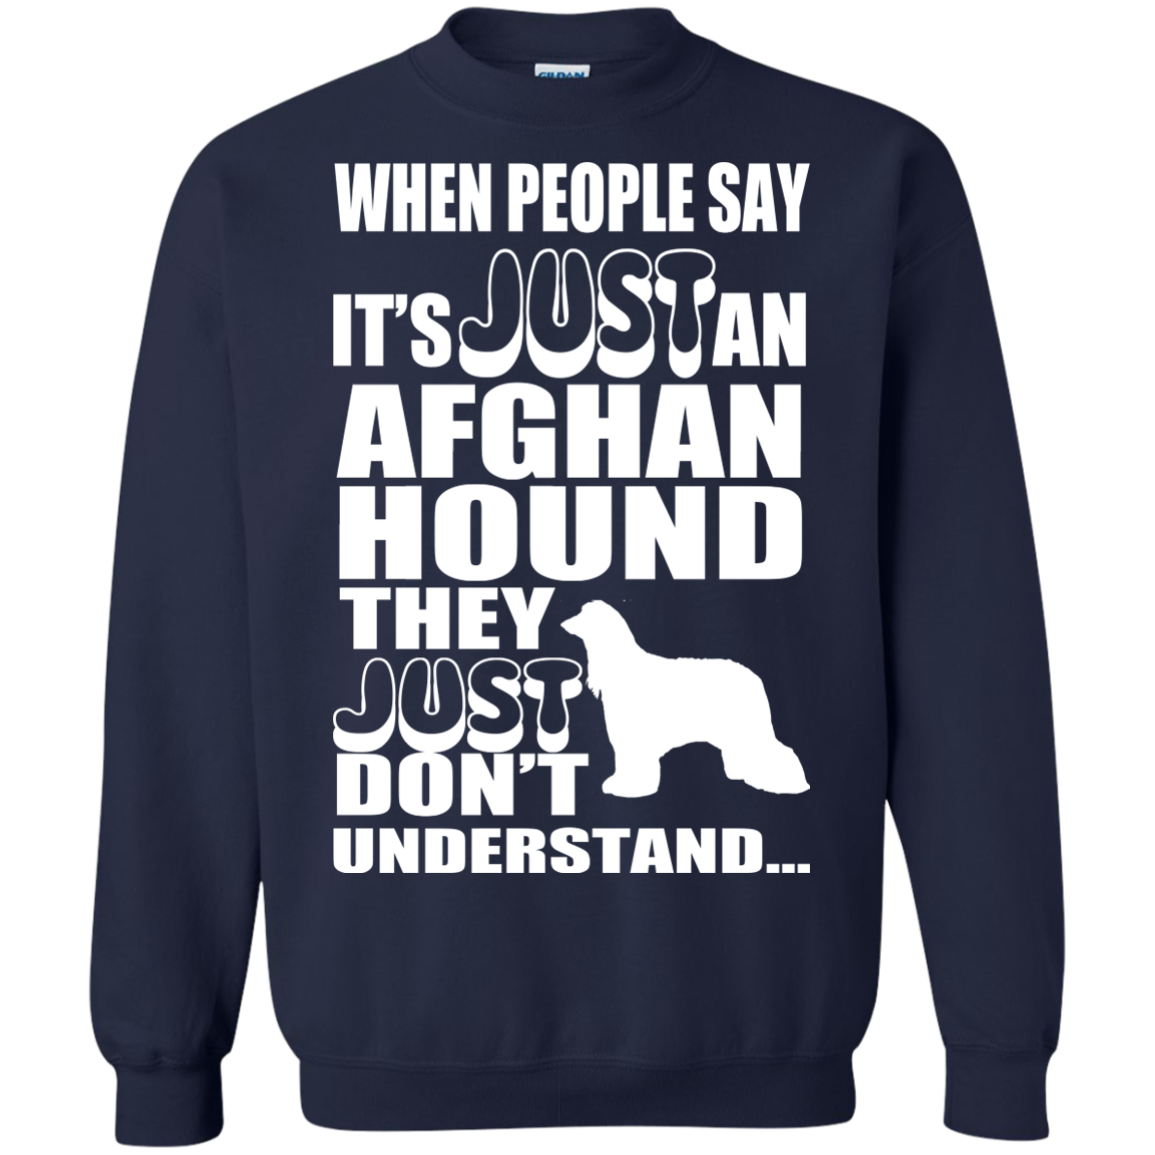 When People Say Just An Afghan Hound They Just Dont Understand Sweatshirts